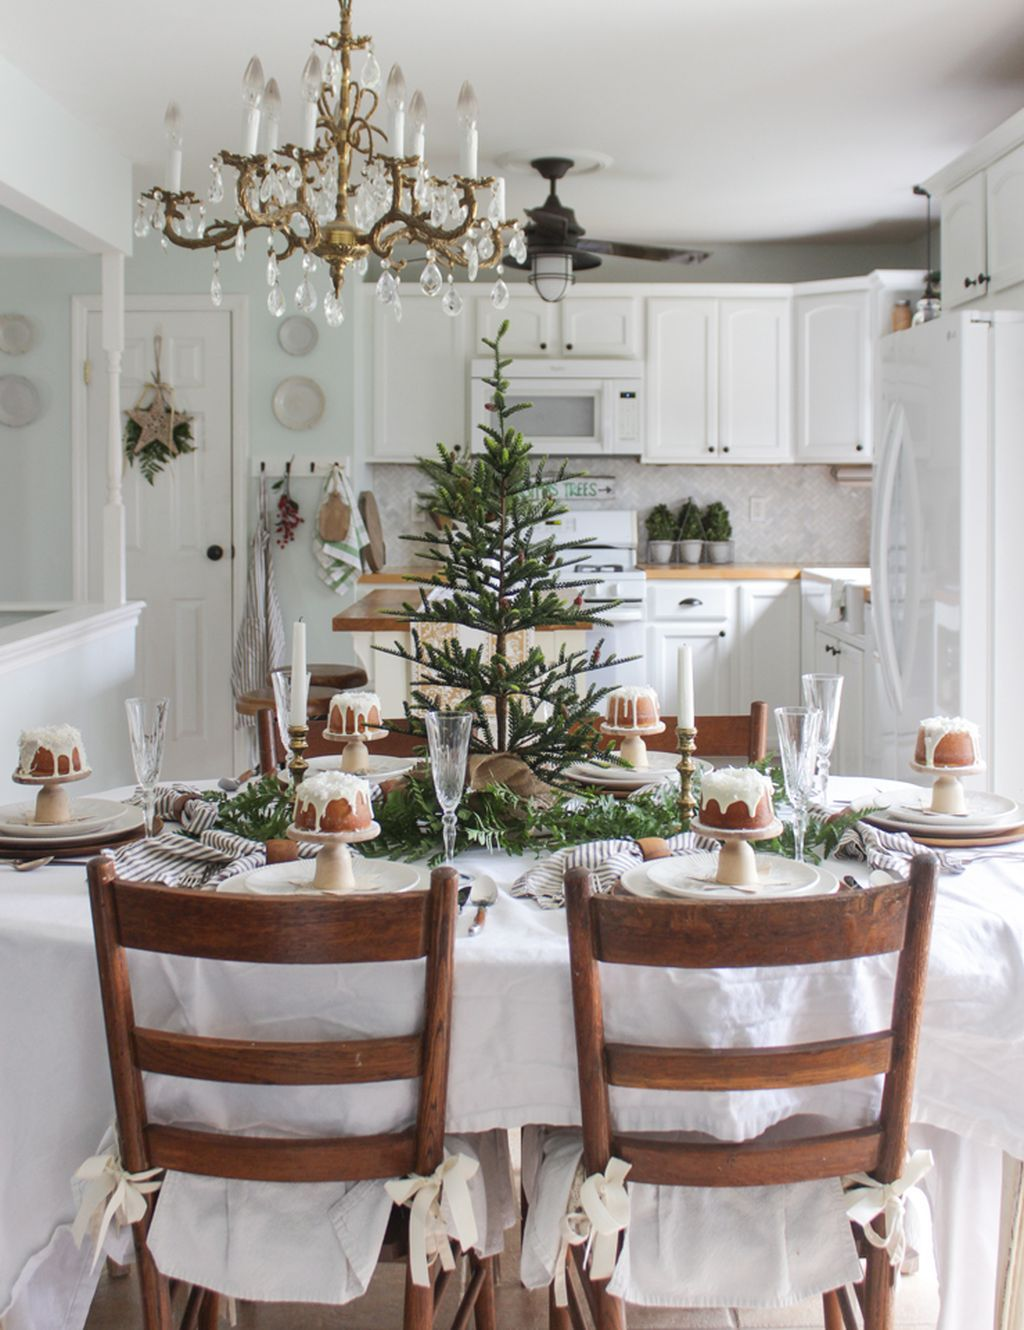 20 Adorable Rustic Christmas Kitchen Decoration Ideas  Deco noel